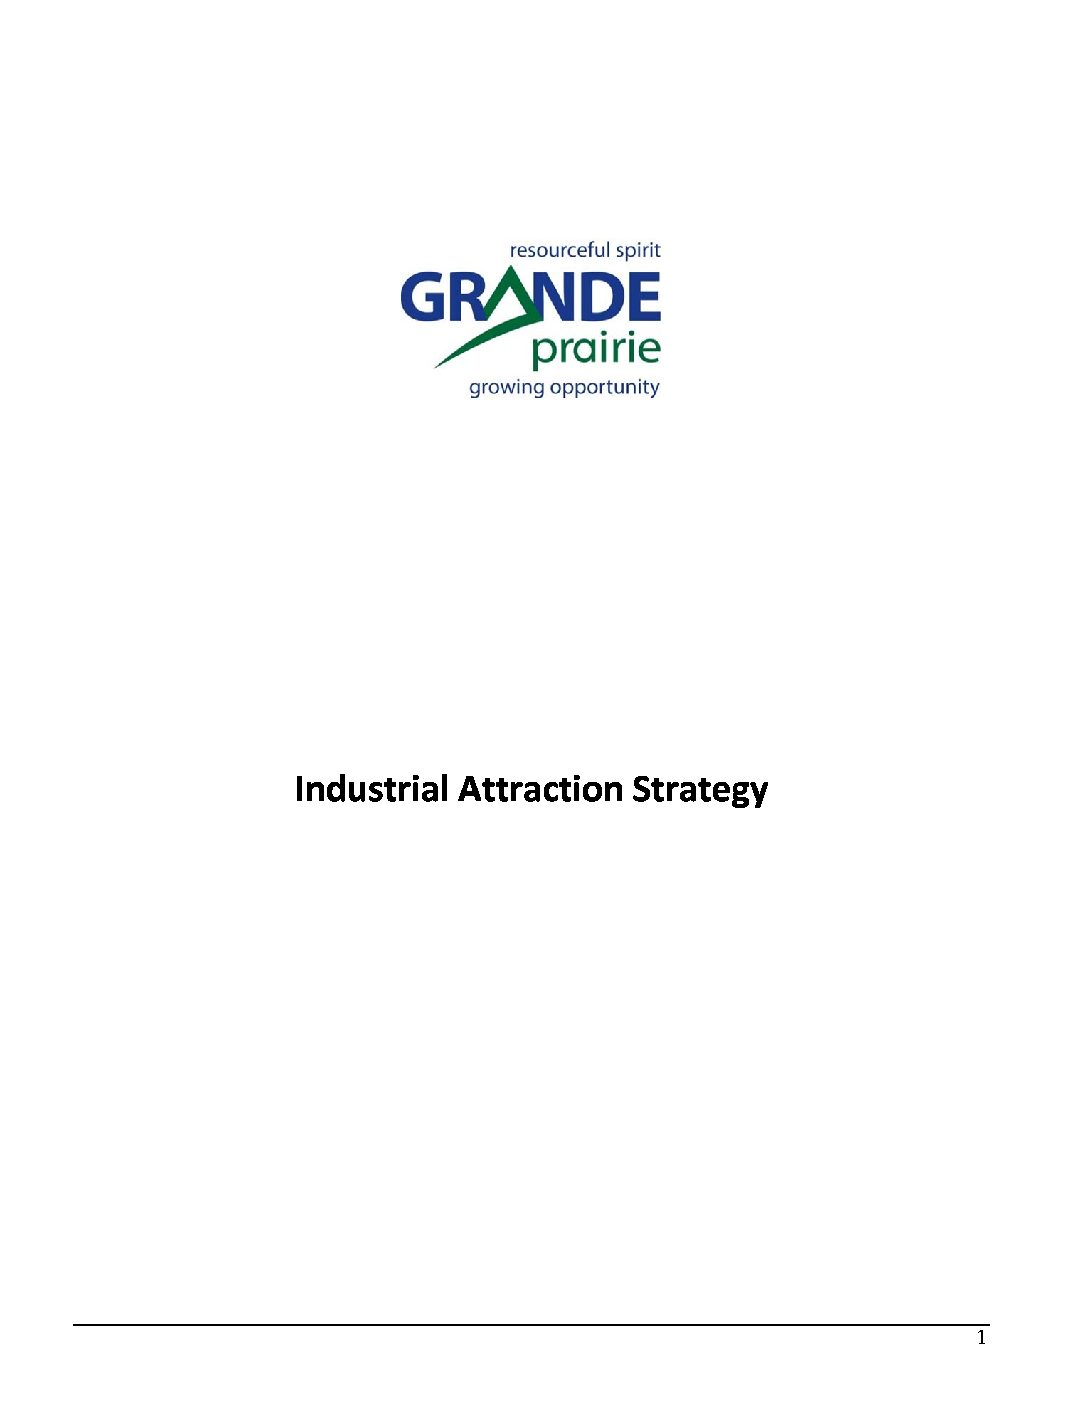 Grande Prairie – Council's Industrial Attraction Strategy